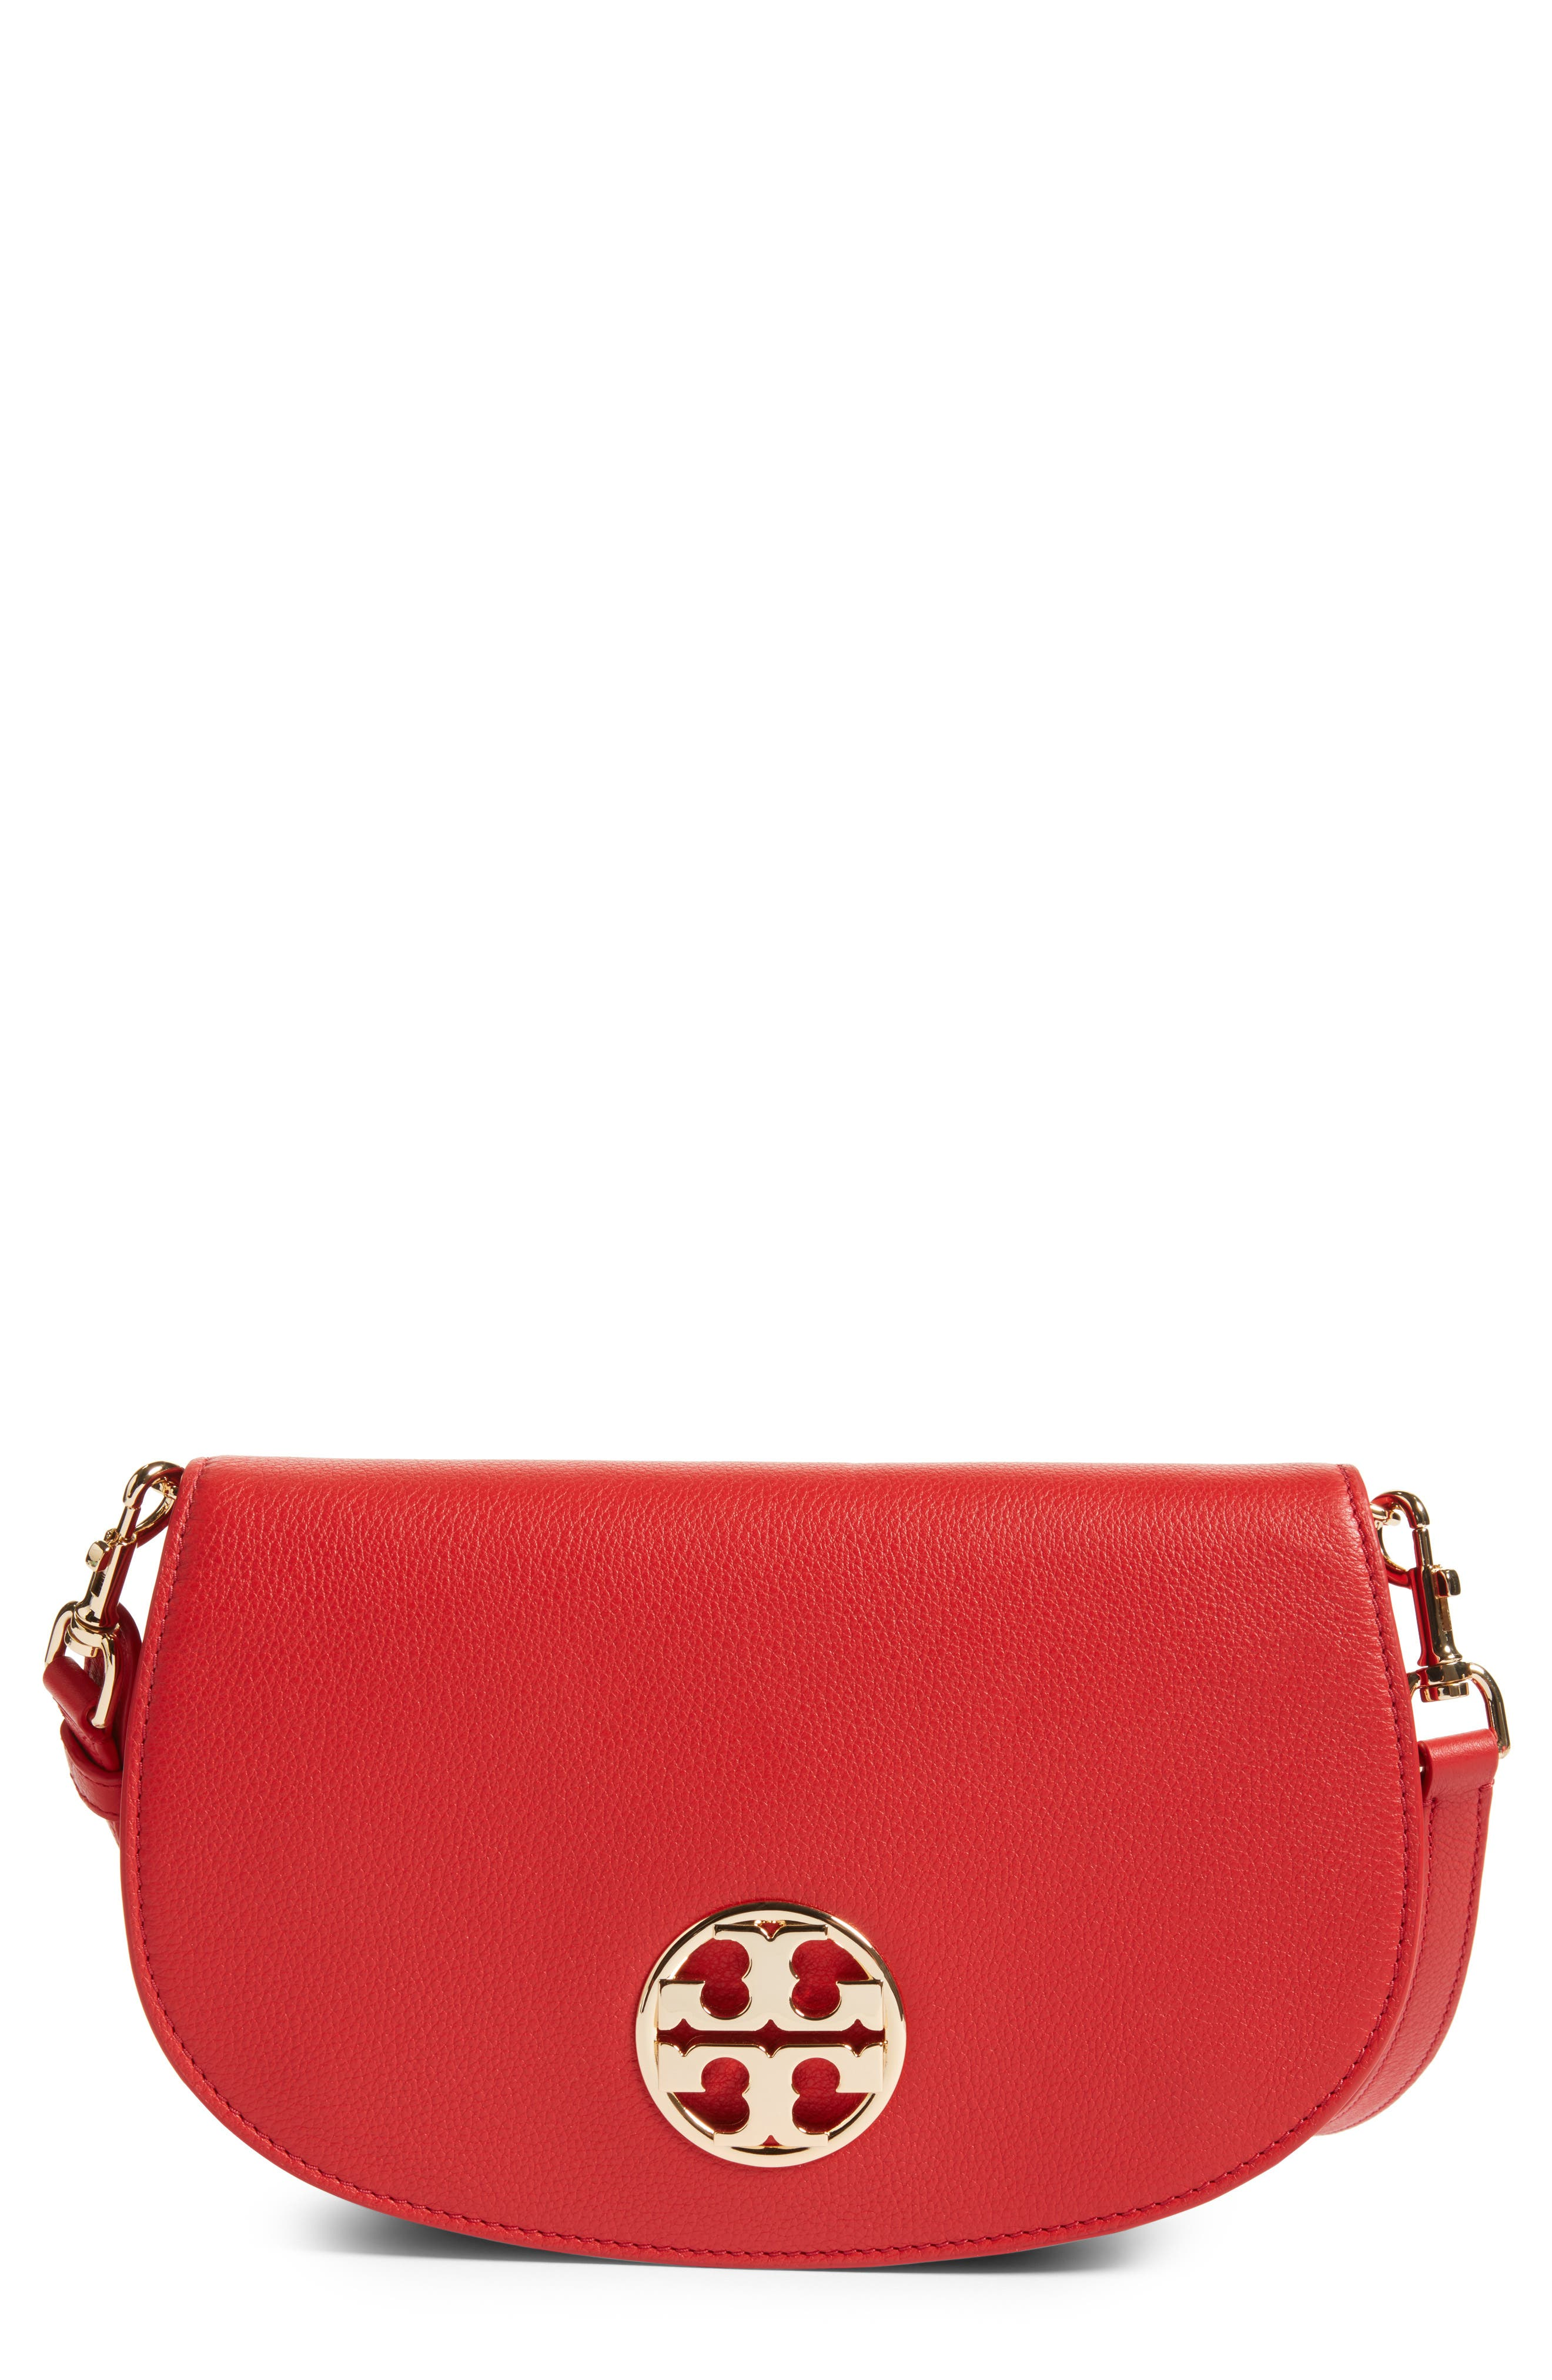 Alternate Image 1 Selected - Tory Burch Jamie Convertible Leather Clutch